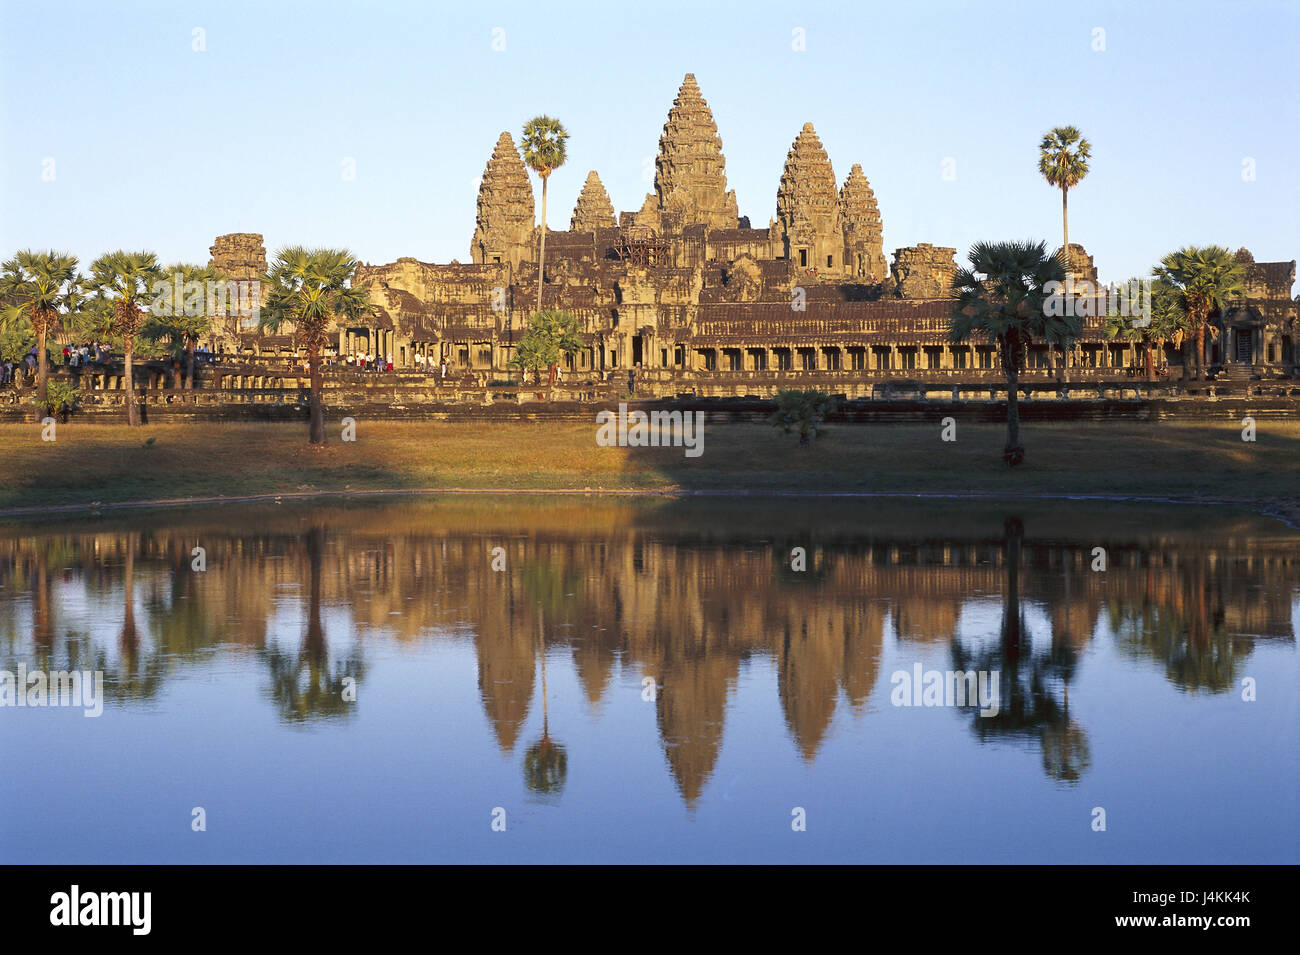 Cambodia, Angkor Wat, Khmer temple, pond, mirroring Asia, South-East Asia, temple, temple attachment, builds in - Stock Image